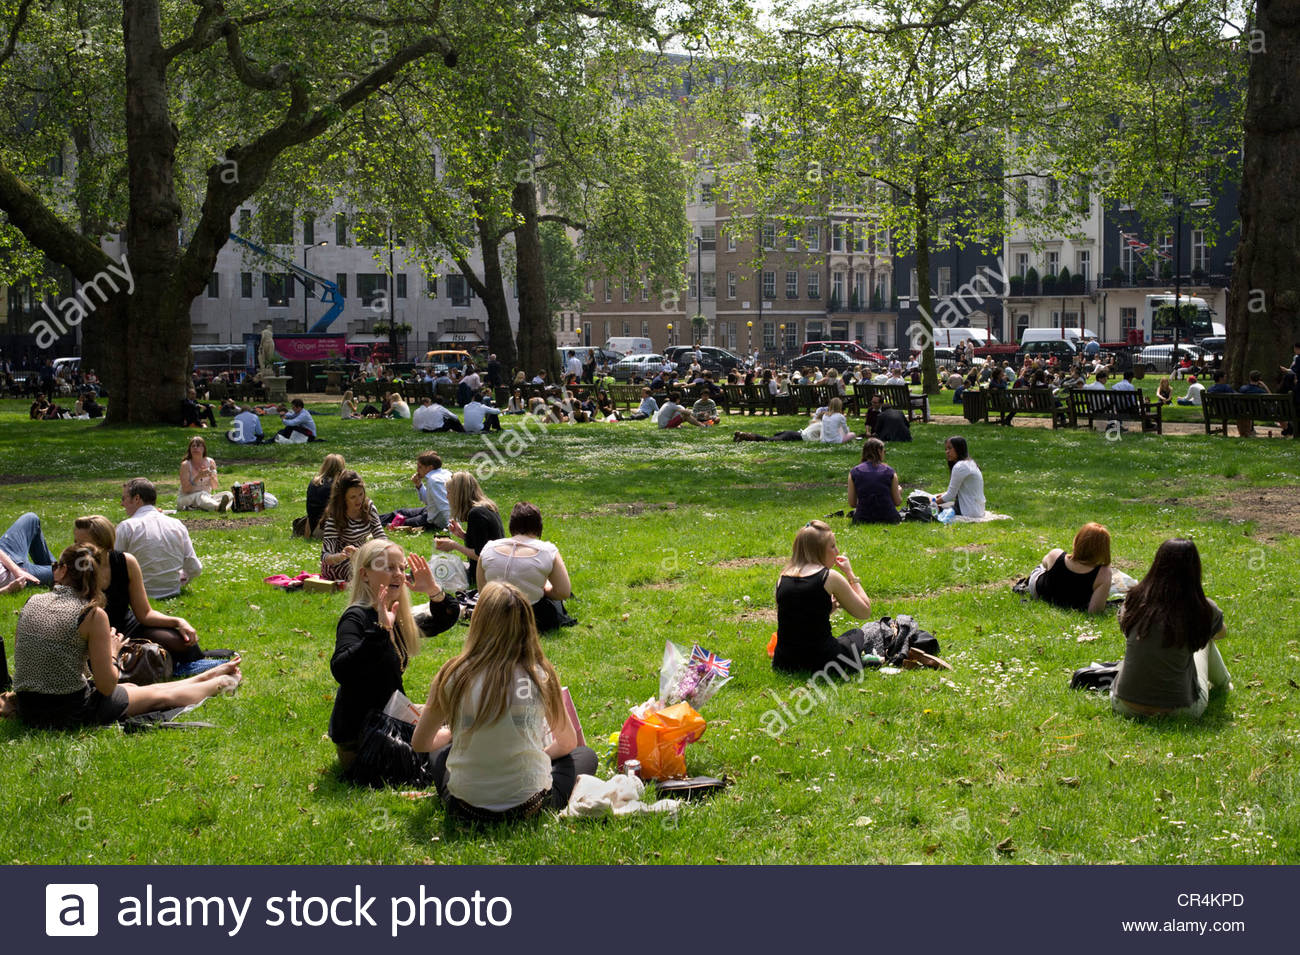 b ro arbeiter picknick am berkeley square zur mittagszeit bei warmem wetter london stockfoto. Black Bedroom Furniture Sets. Home Design Ideas